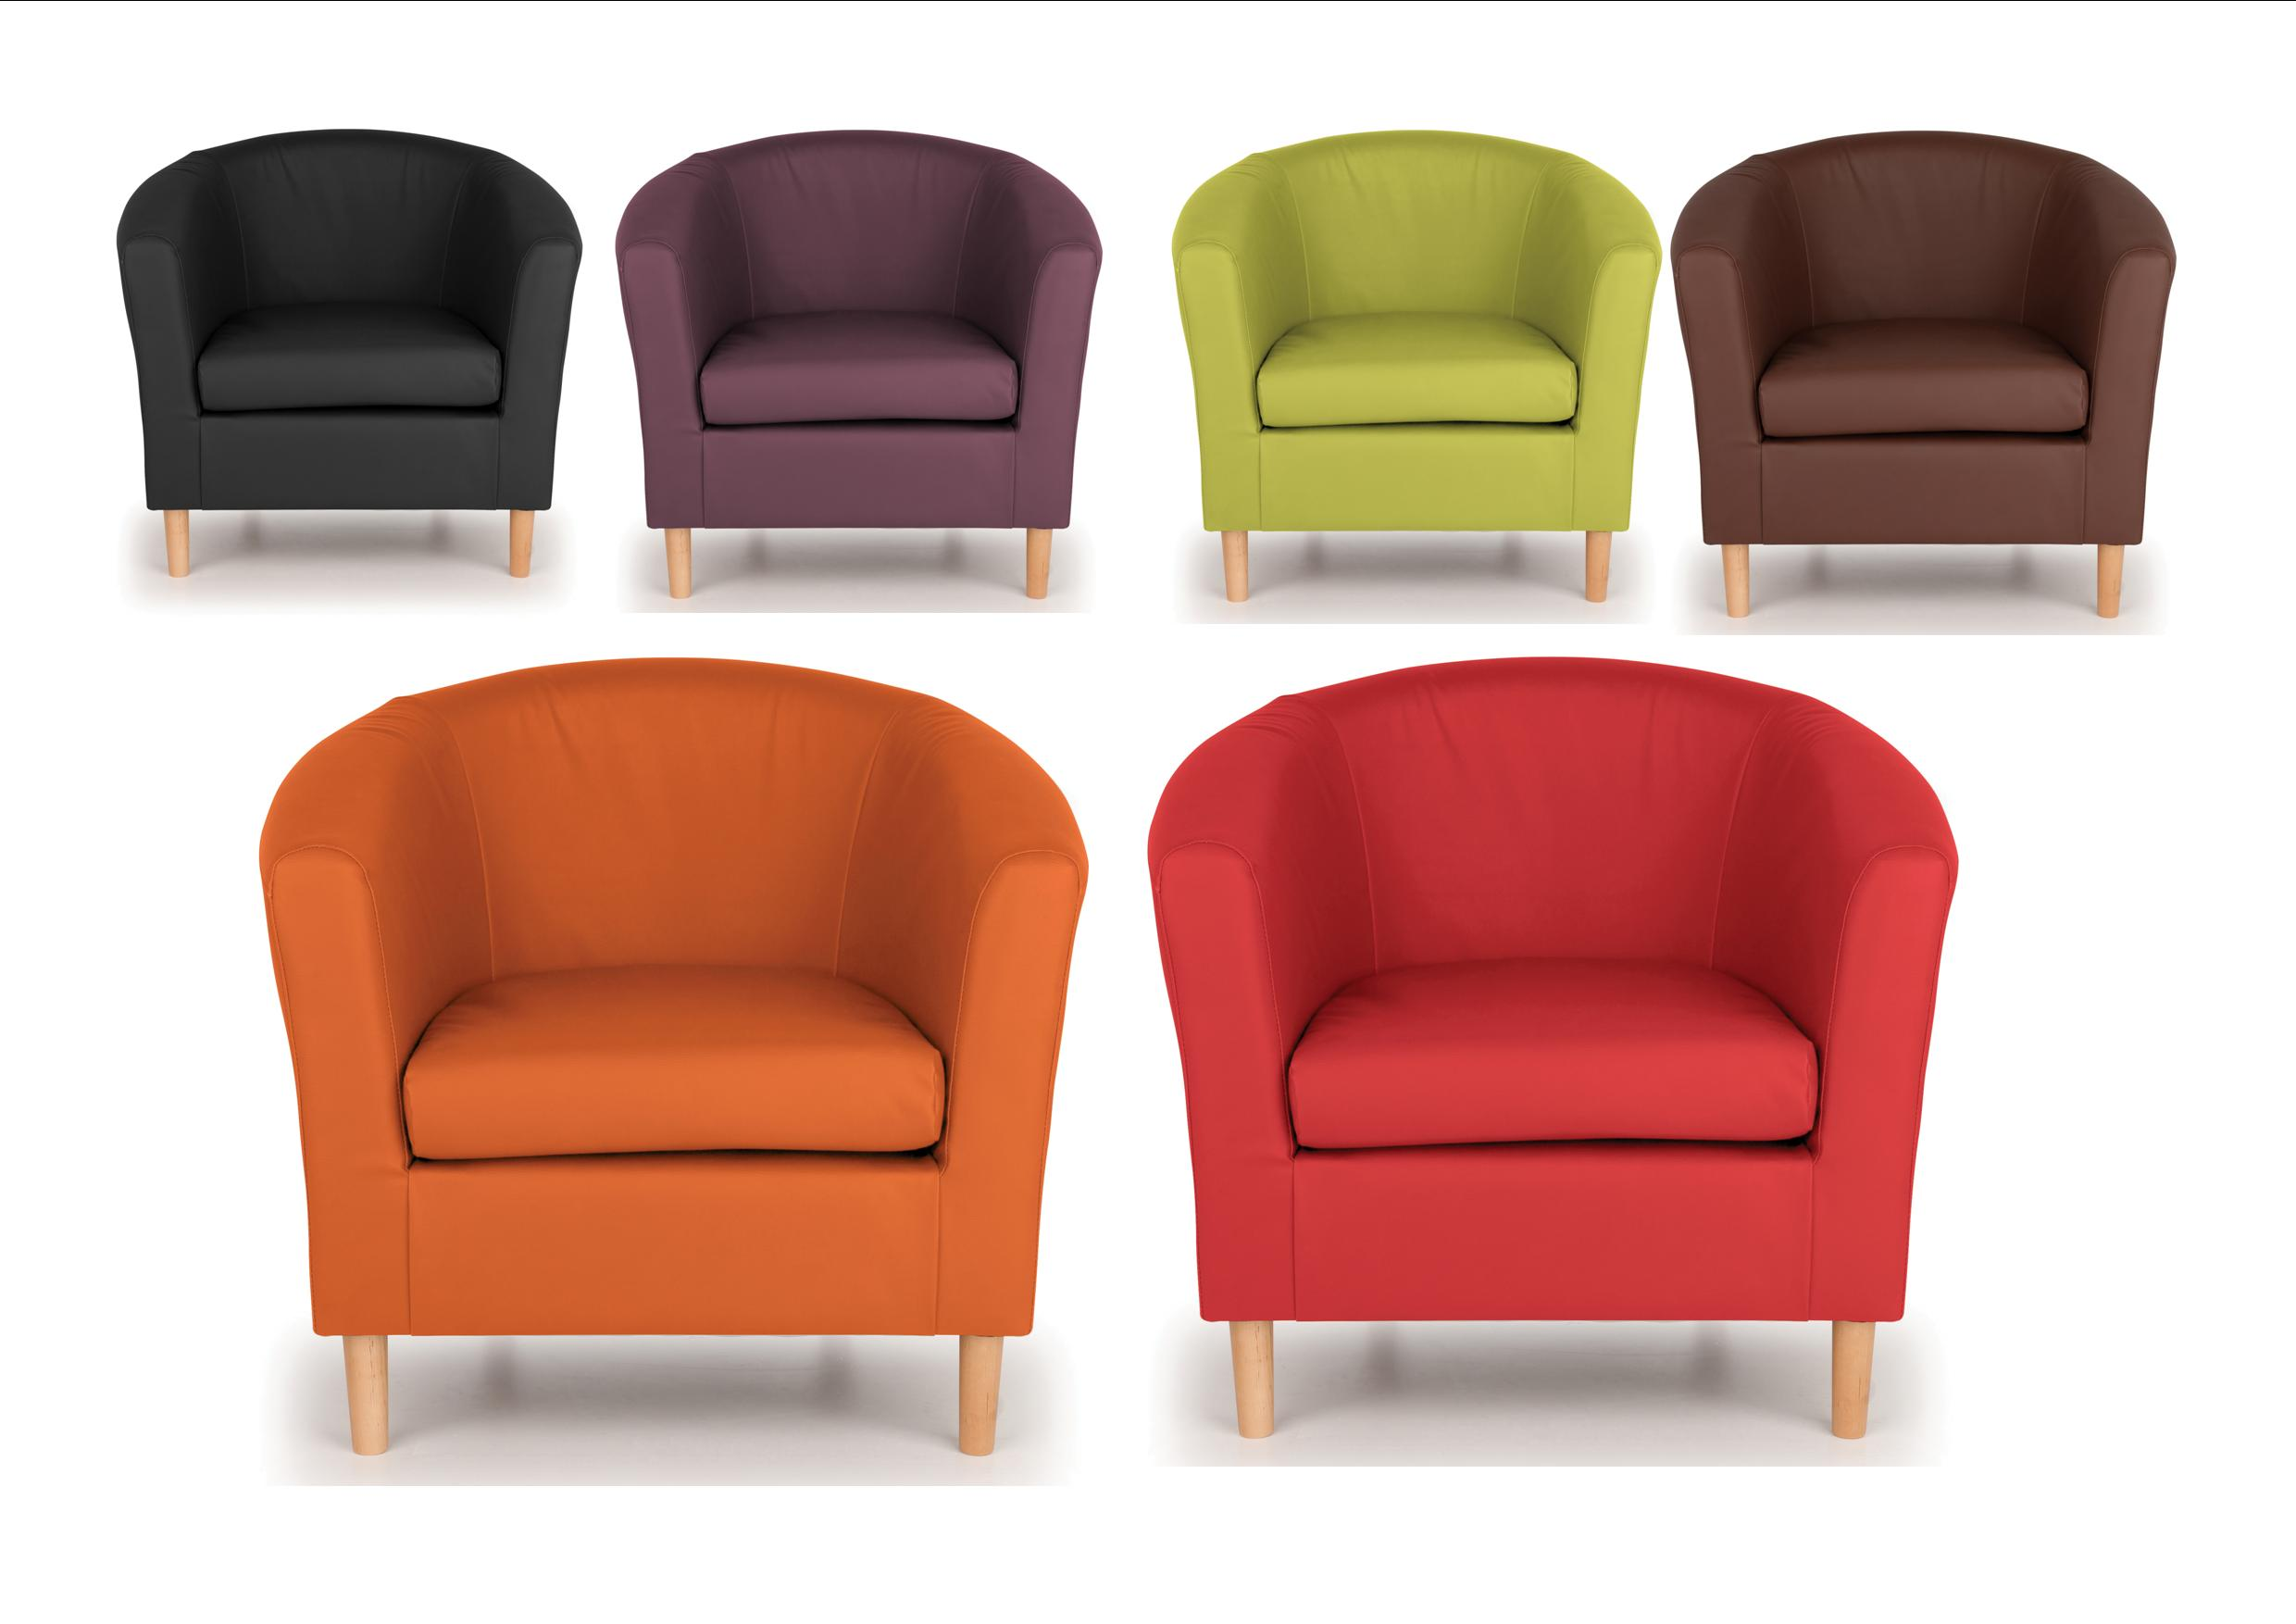 Tub Chairs Details About Nicole Tub Chairs Brown Black Lime Orange Plum Red Modern Design